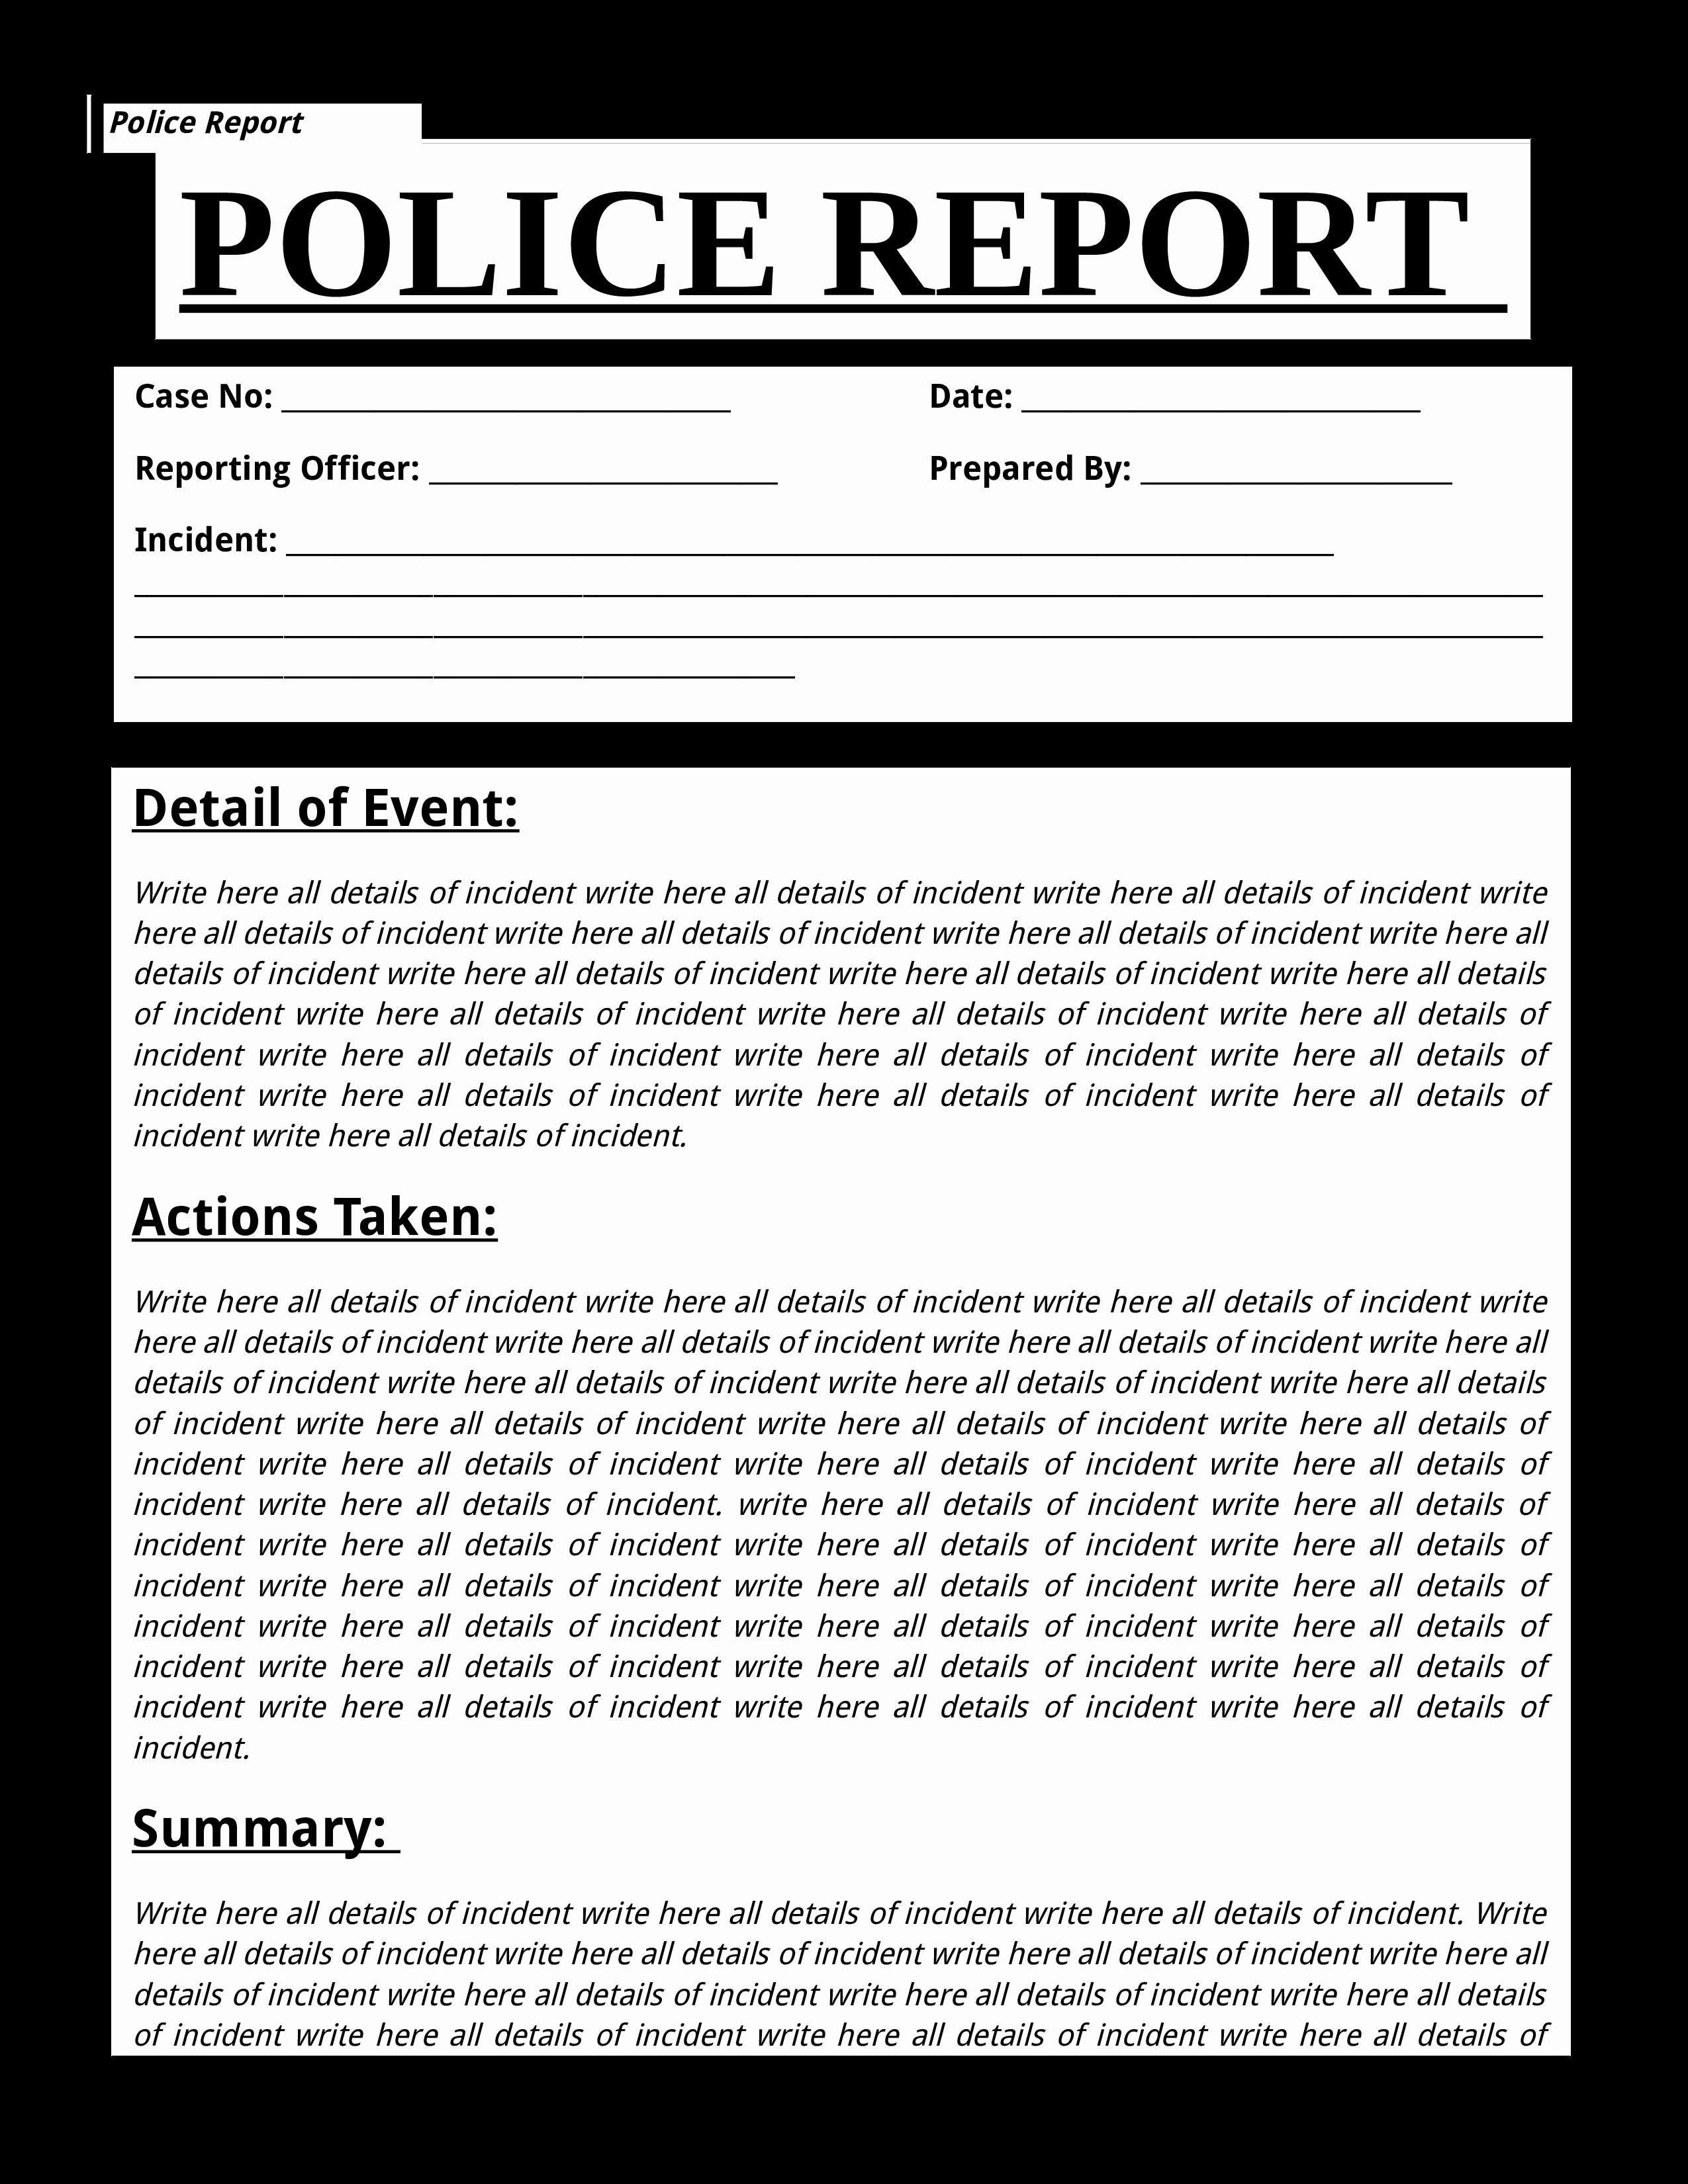 Police Report Template Pdf Best Of Free Police Report Template